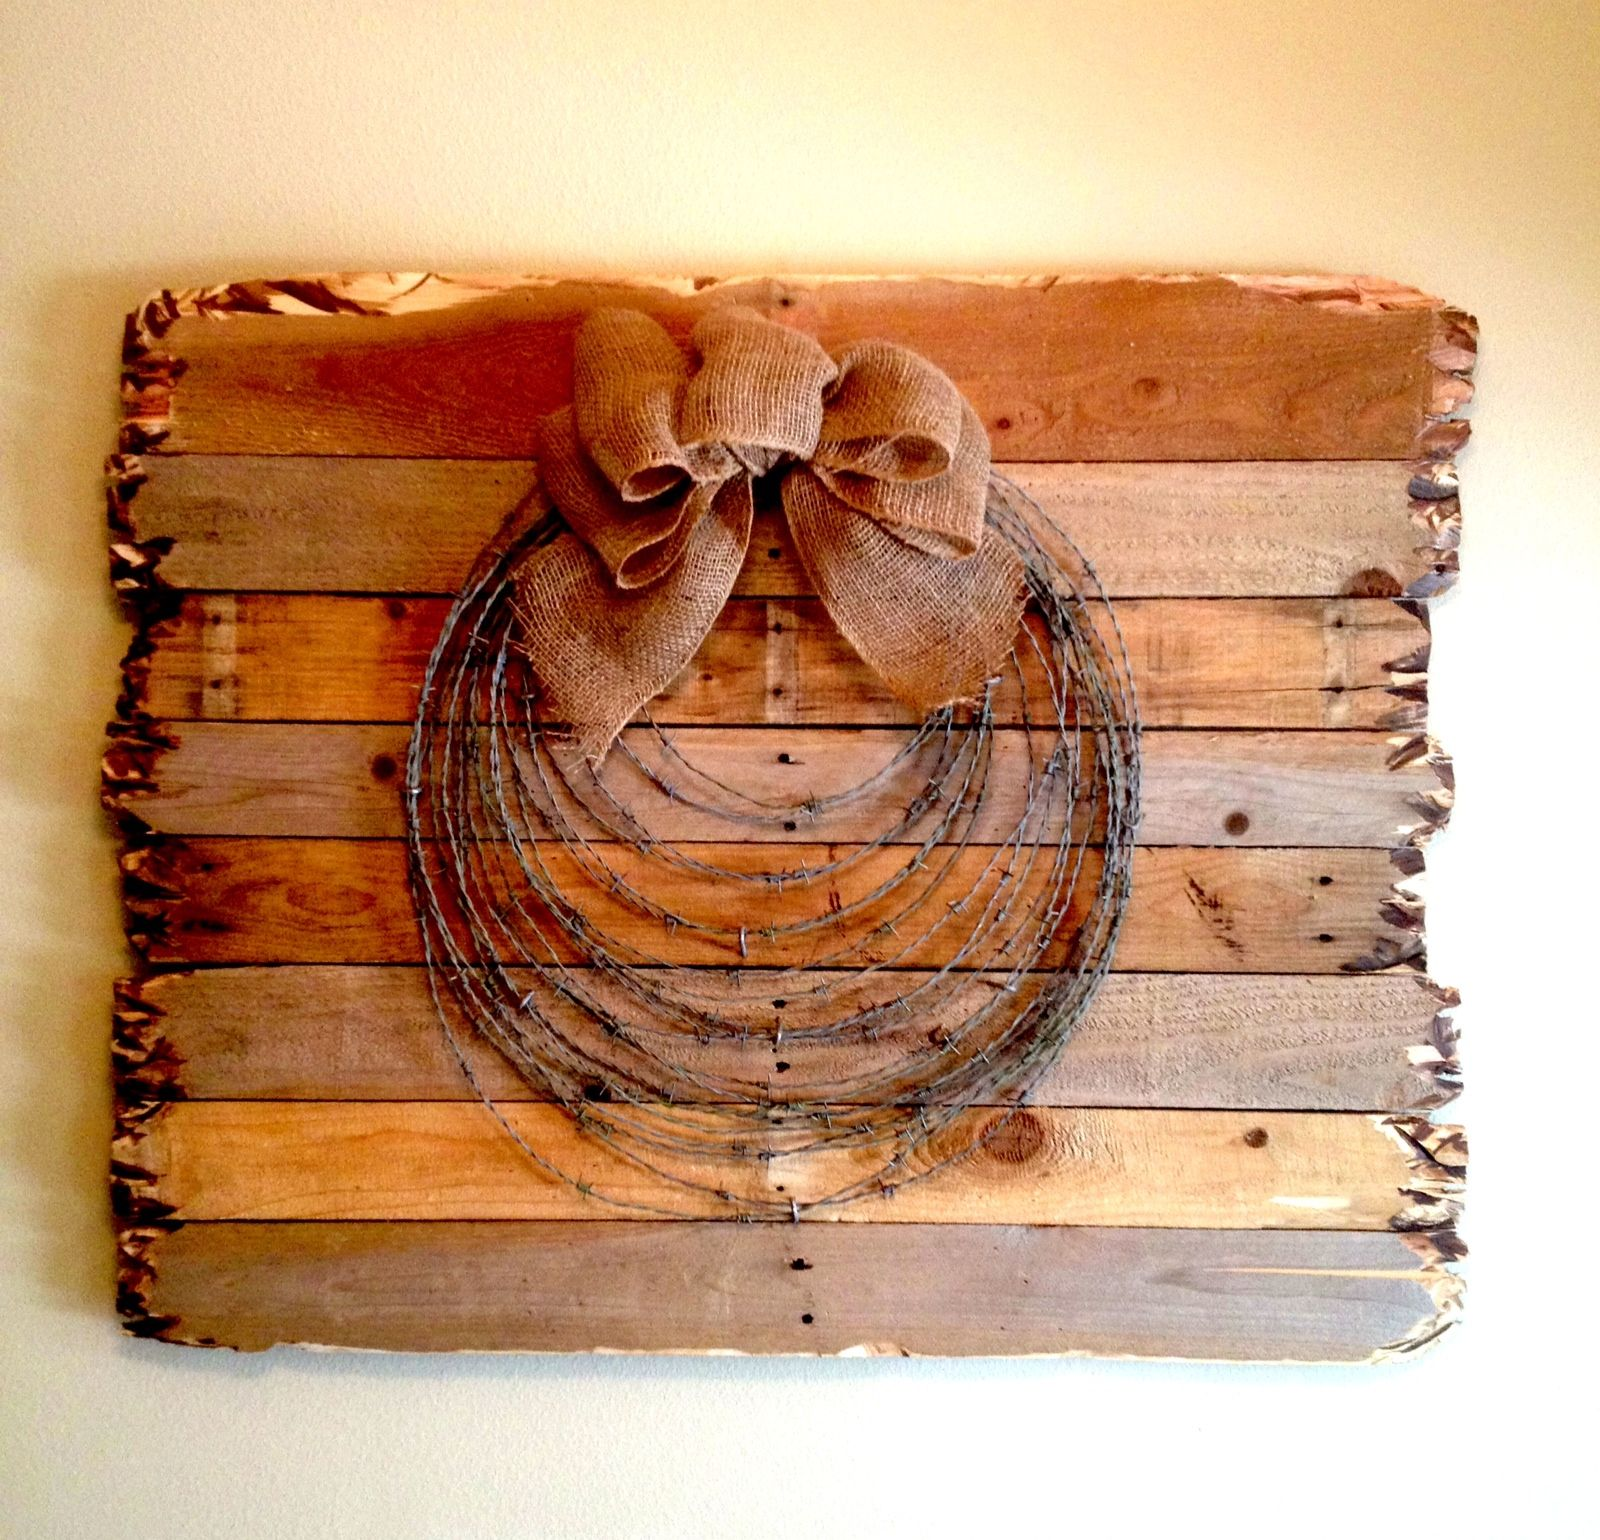 Diy Rope Craft Projects To Do At Home: Pallet Wood, Barbed Wire And Burlap! Home Made!